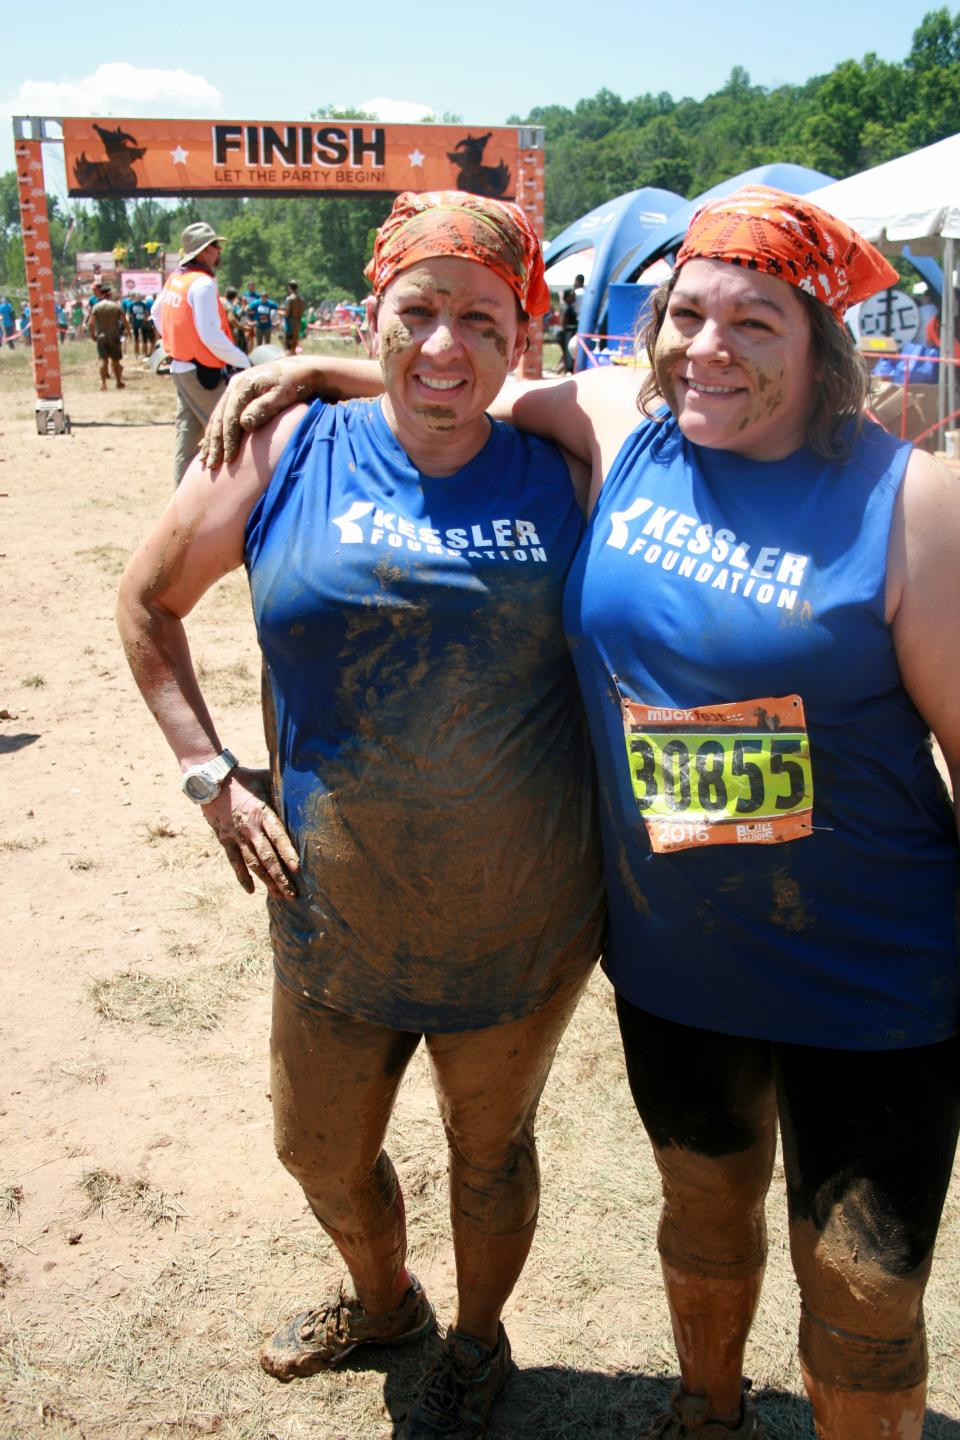 Employees Cherie Giraud and Lauren Strober at the MuckFest, an event benefitting the National Multiple Sclerosis Society - June 2016.